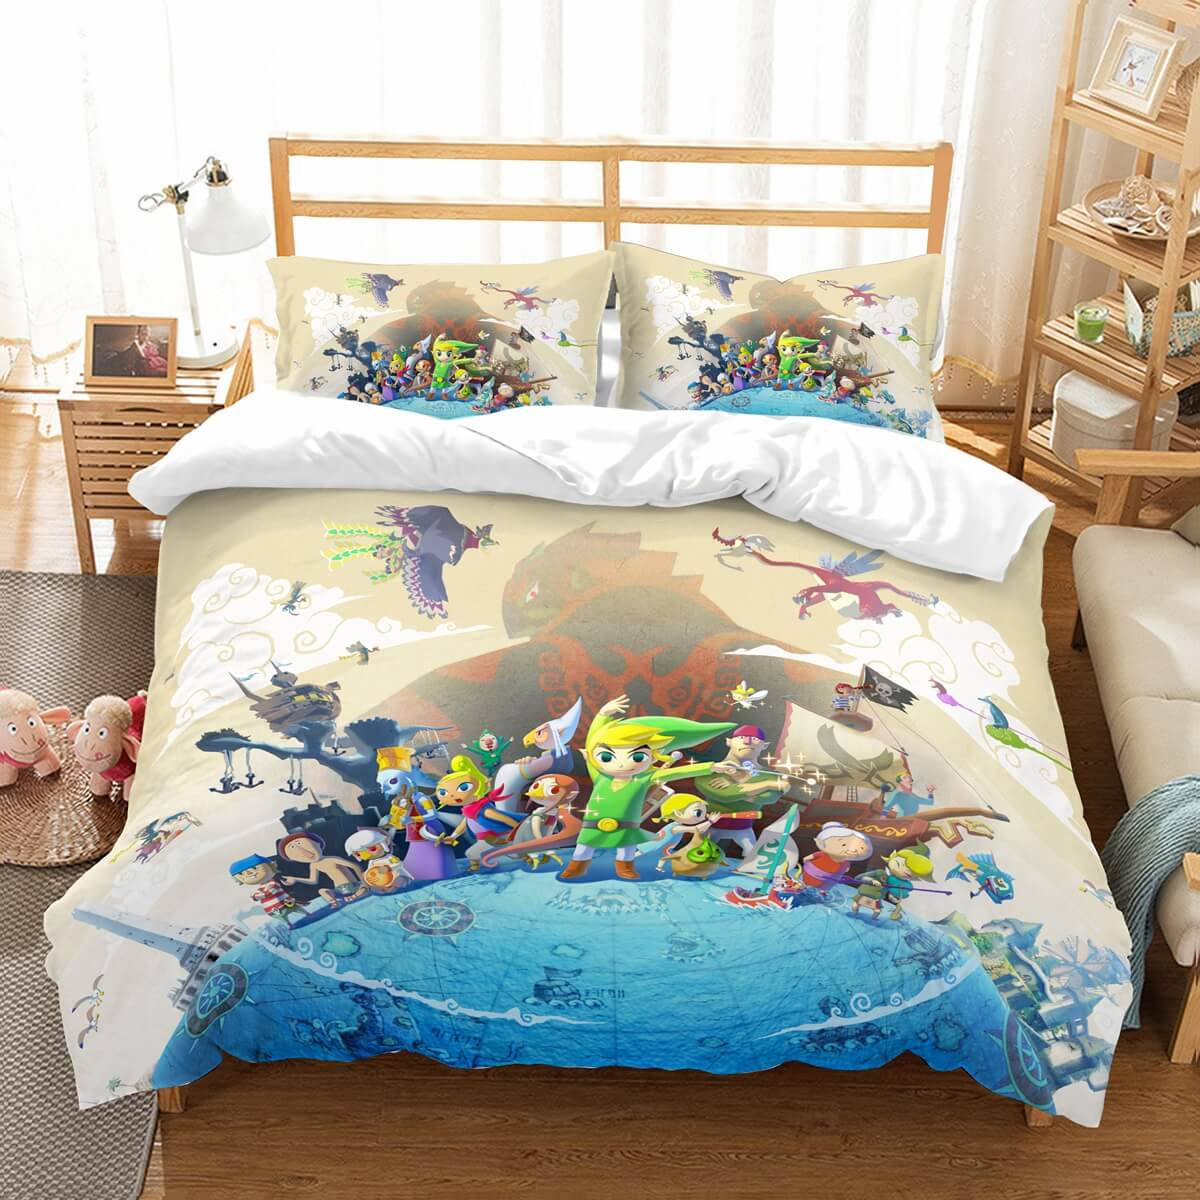 3D Customize The Legend Of Zelda Bedding Set Duvet Cover Set Bedroom Set Bedlinen